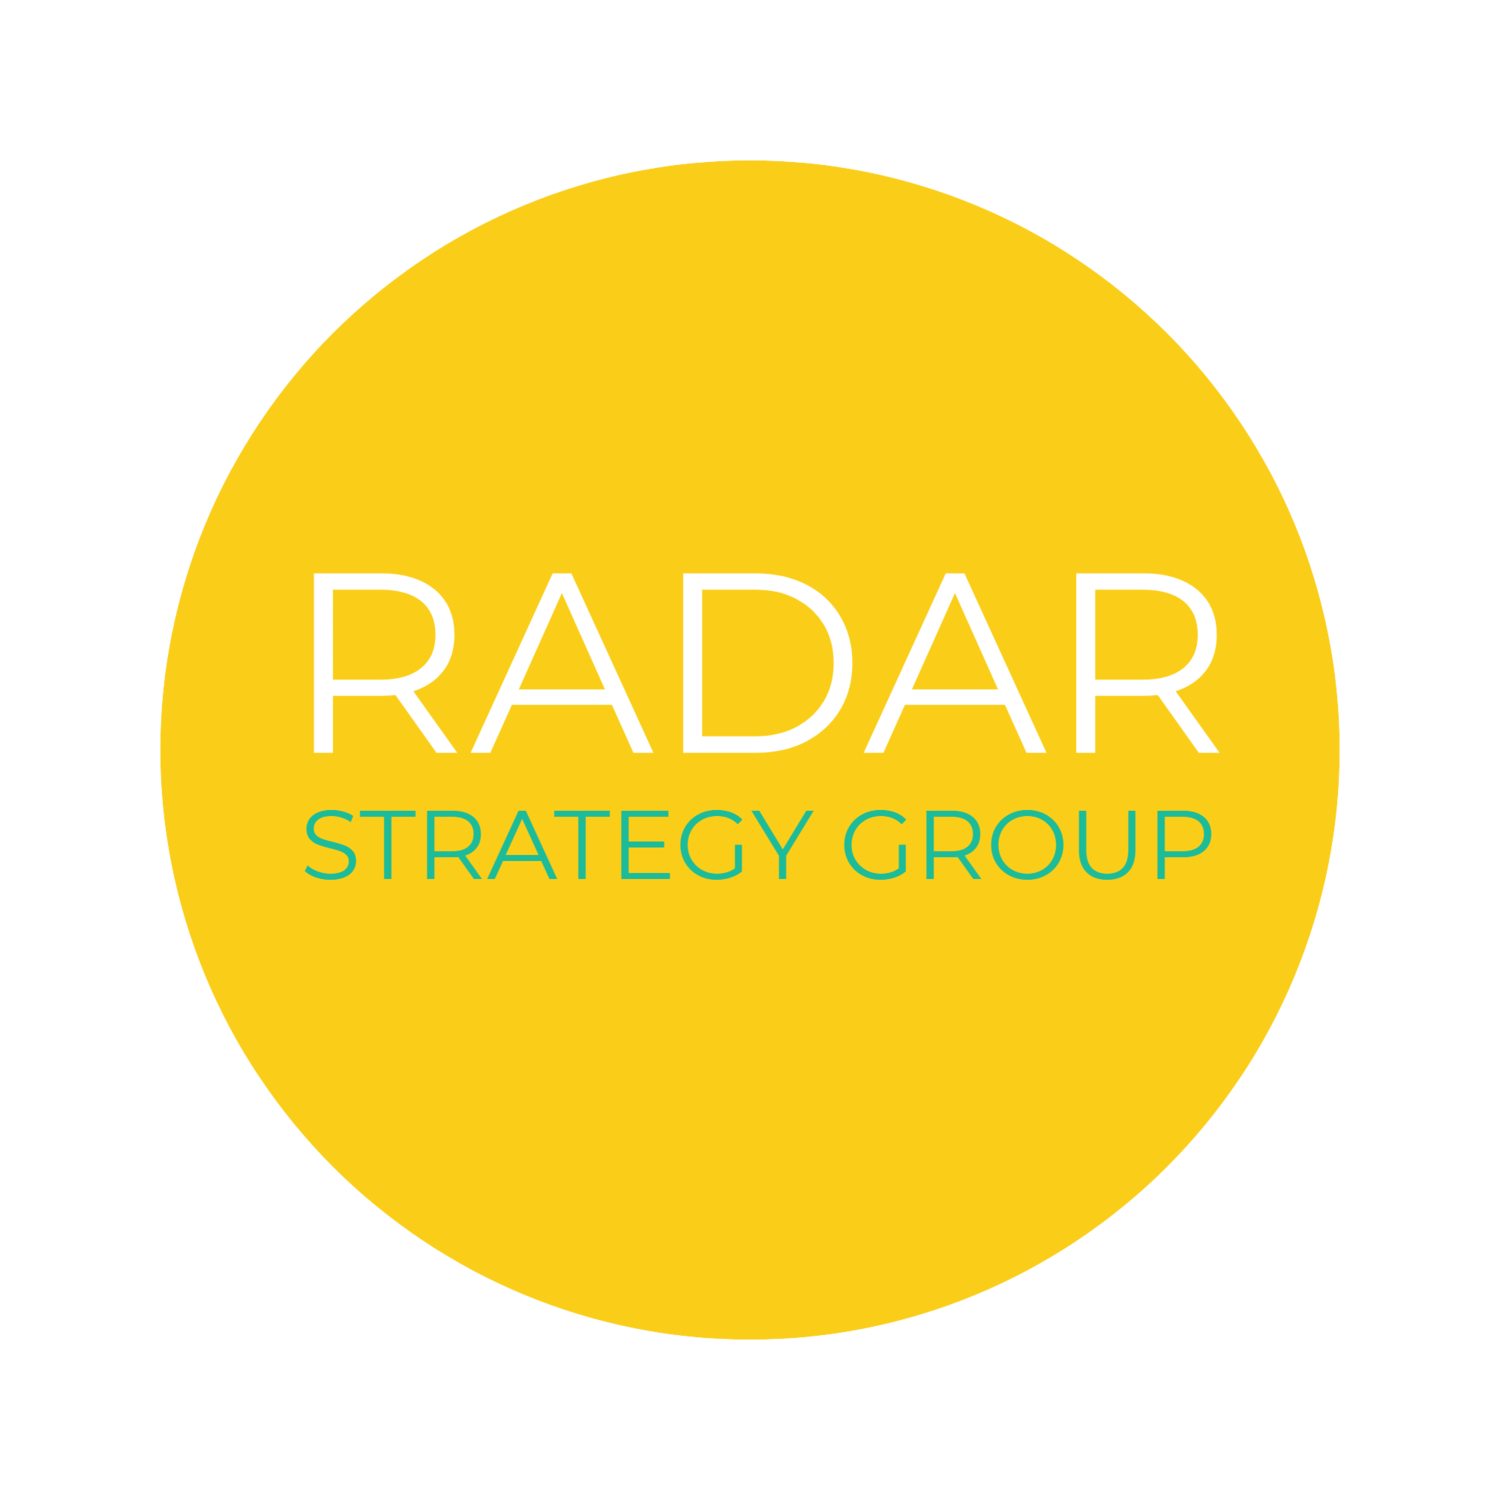 RADAR STRATEGY GROUP